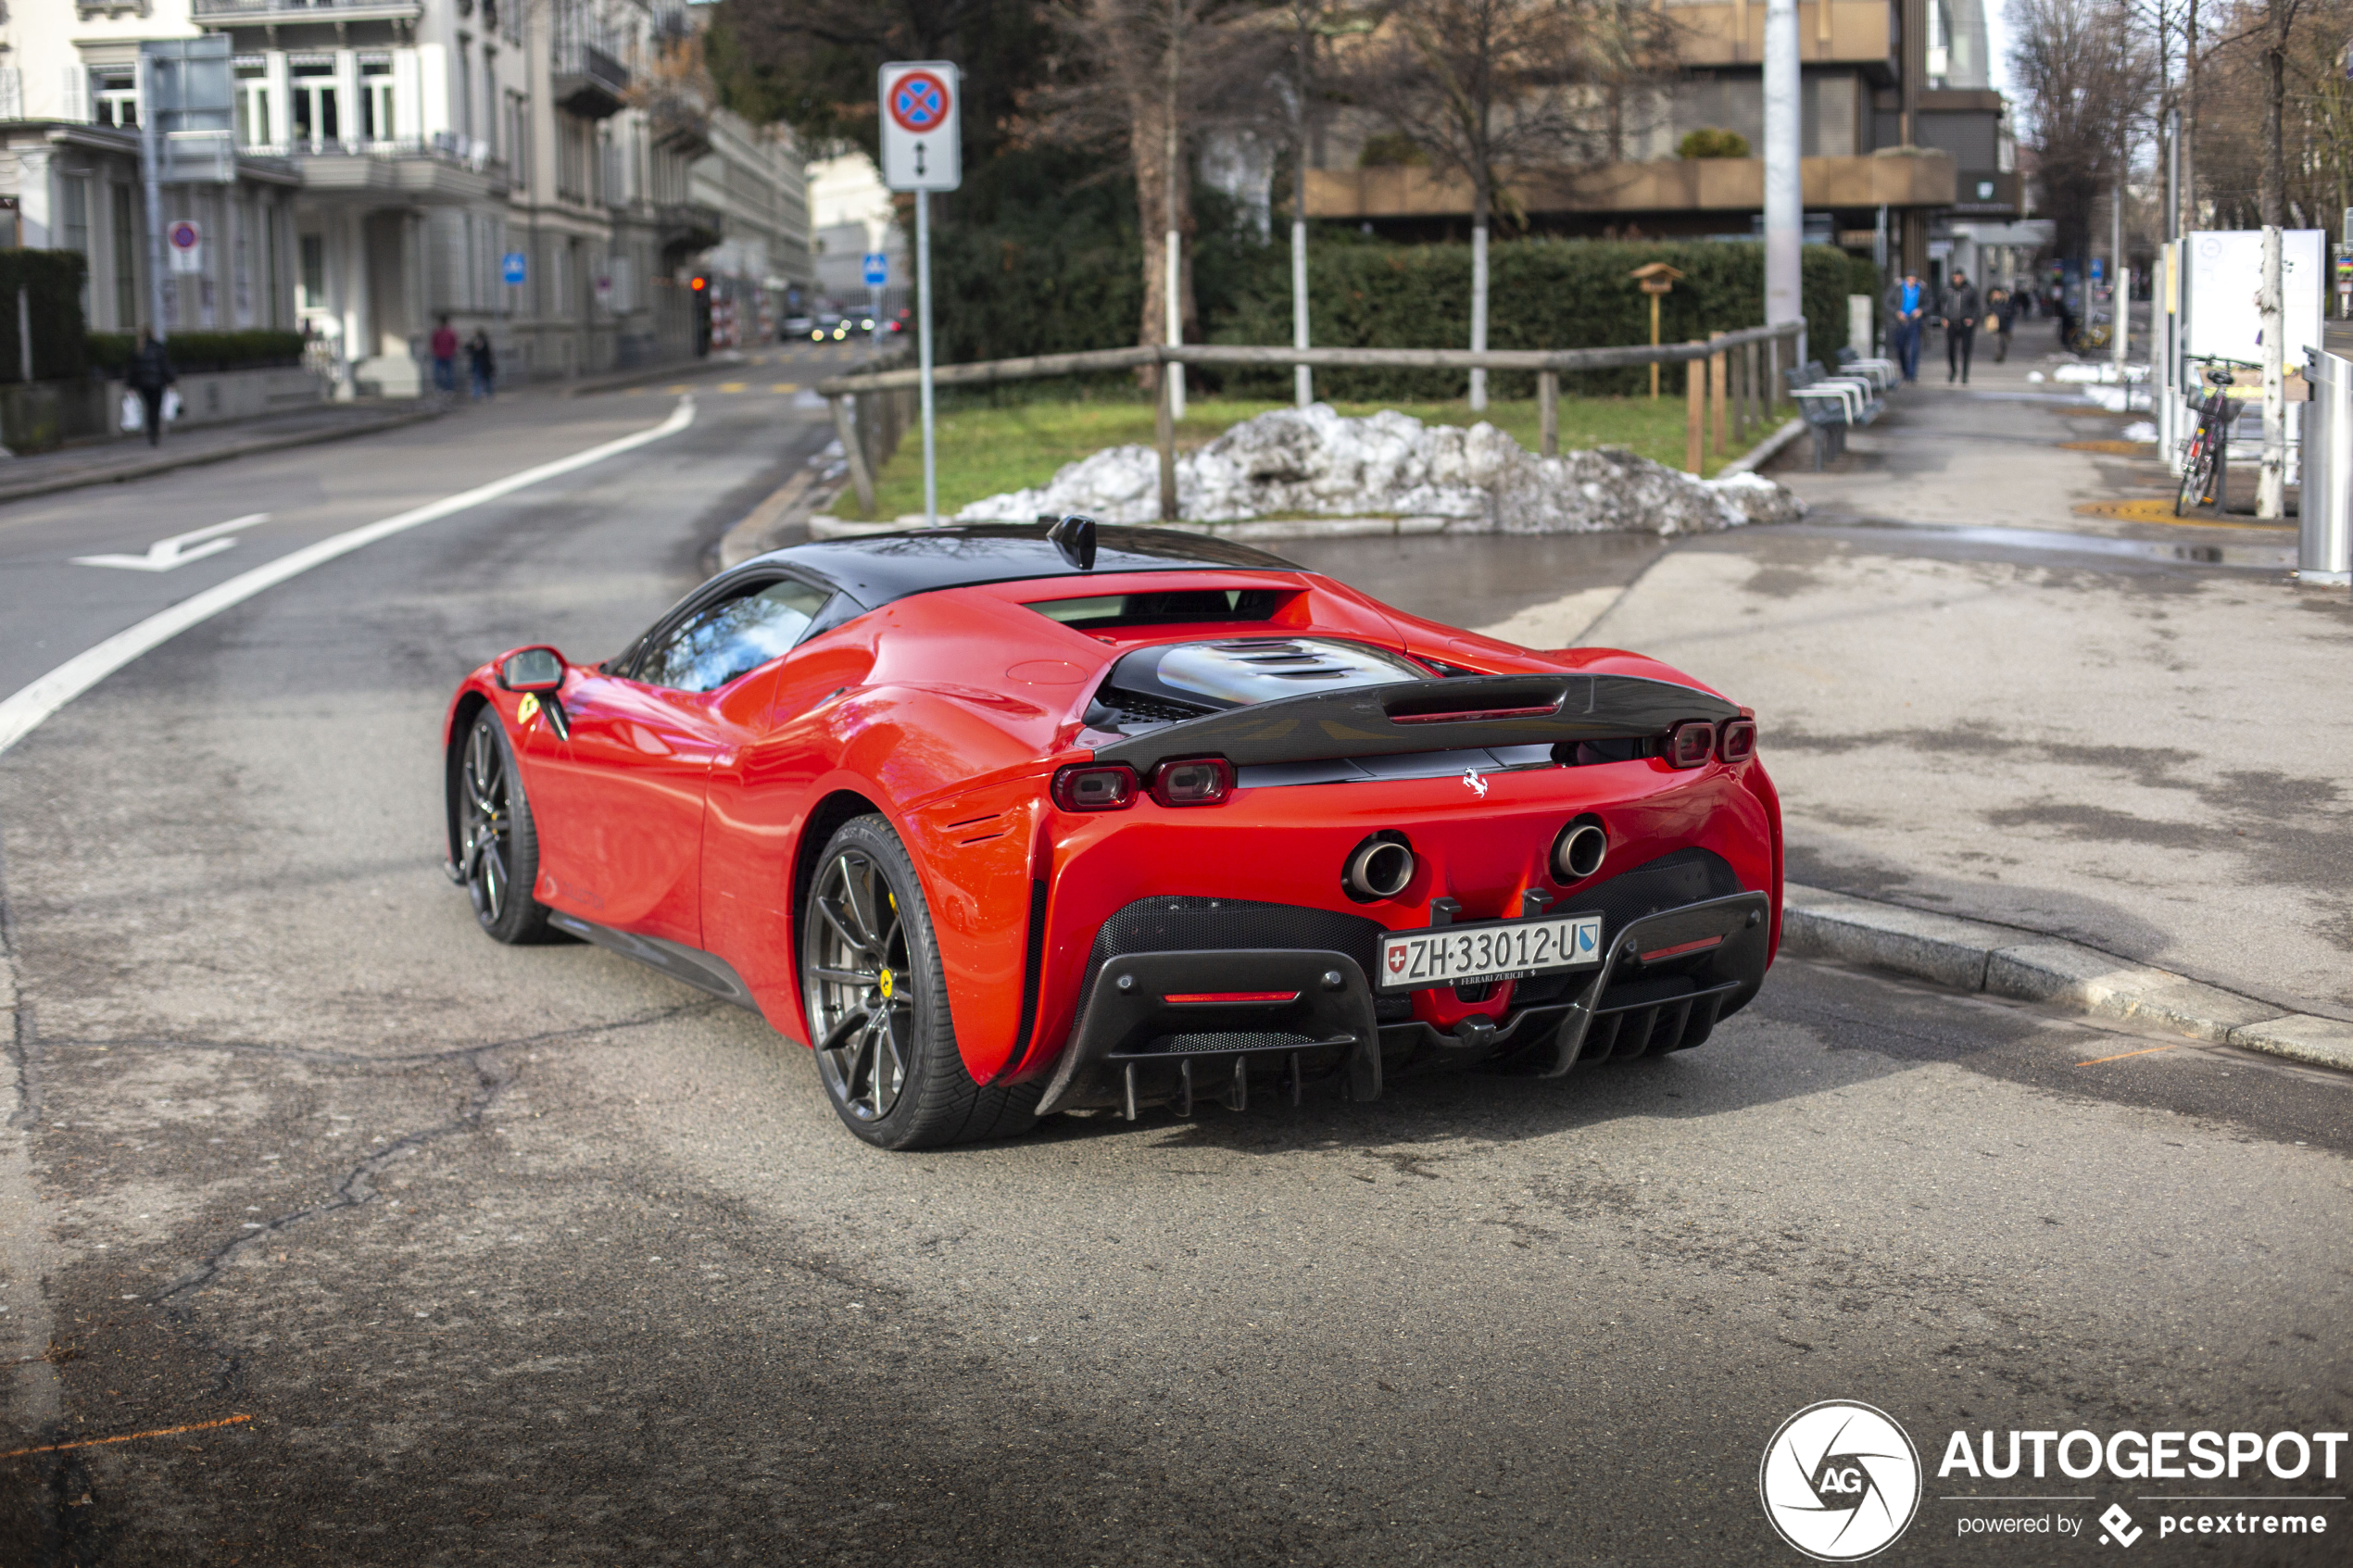 Ferrari SF90 Stradale moves through quiet Zurich